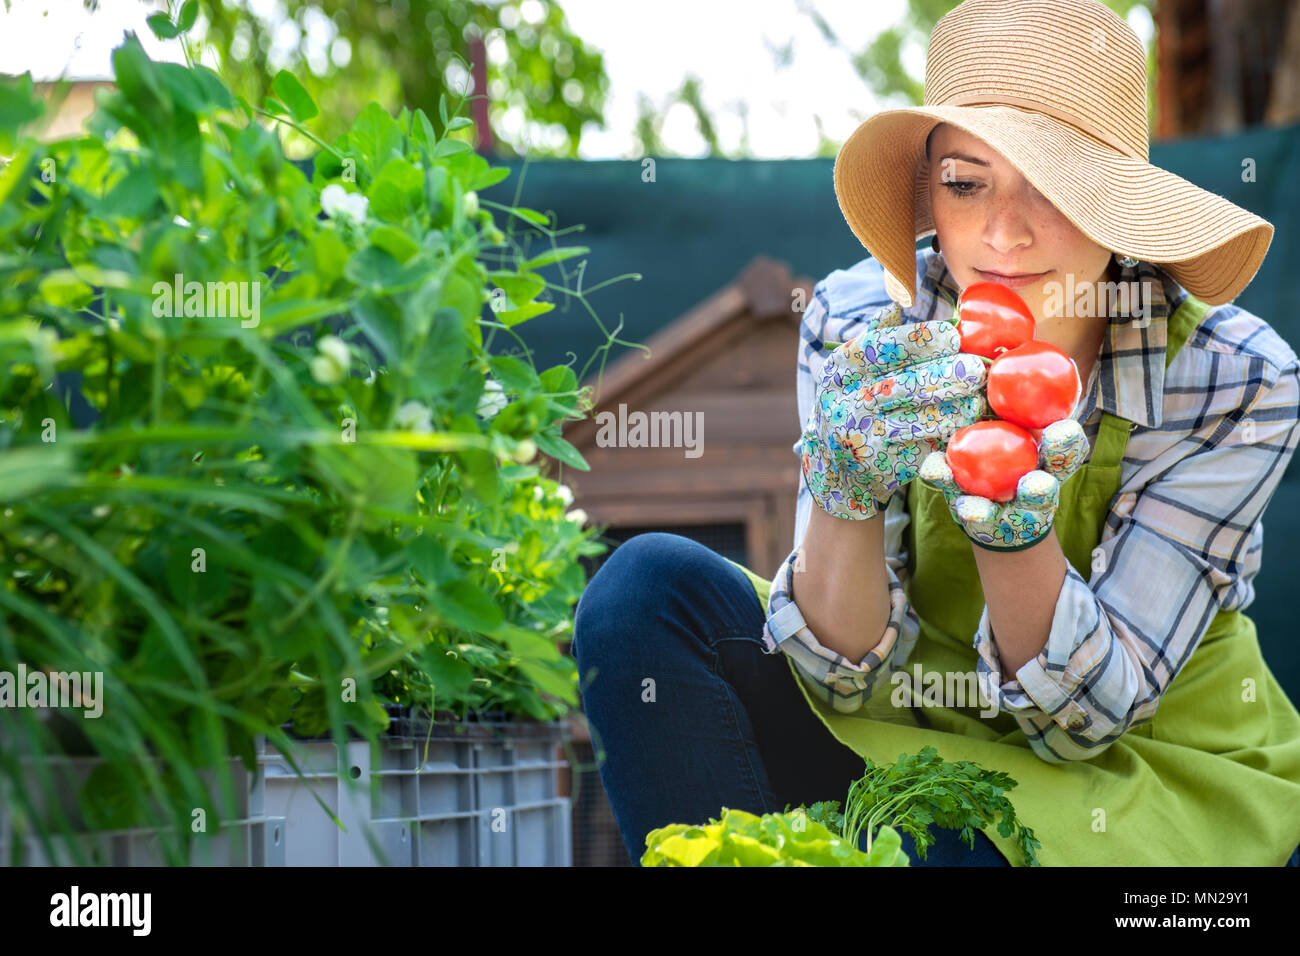 Beautiful young small business farmer smelling freshly harvested tomatoes in her garden. Homegrown bio produce concept. Small business owner. - Stock Image